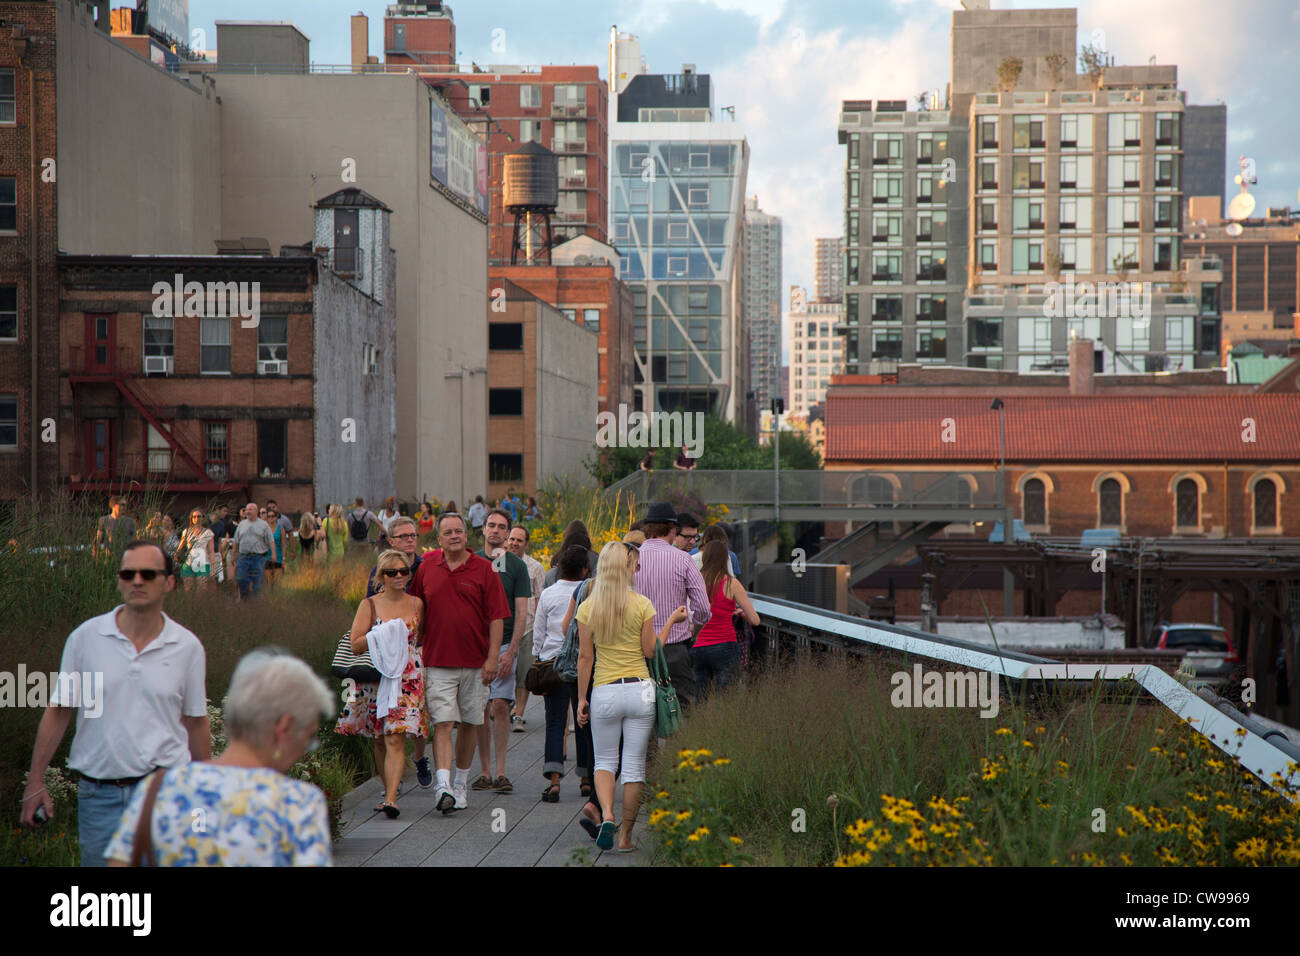 New York, New York - The High Line, an abandoned elevated railroad turned into a linear urban park. - Stock Image